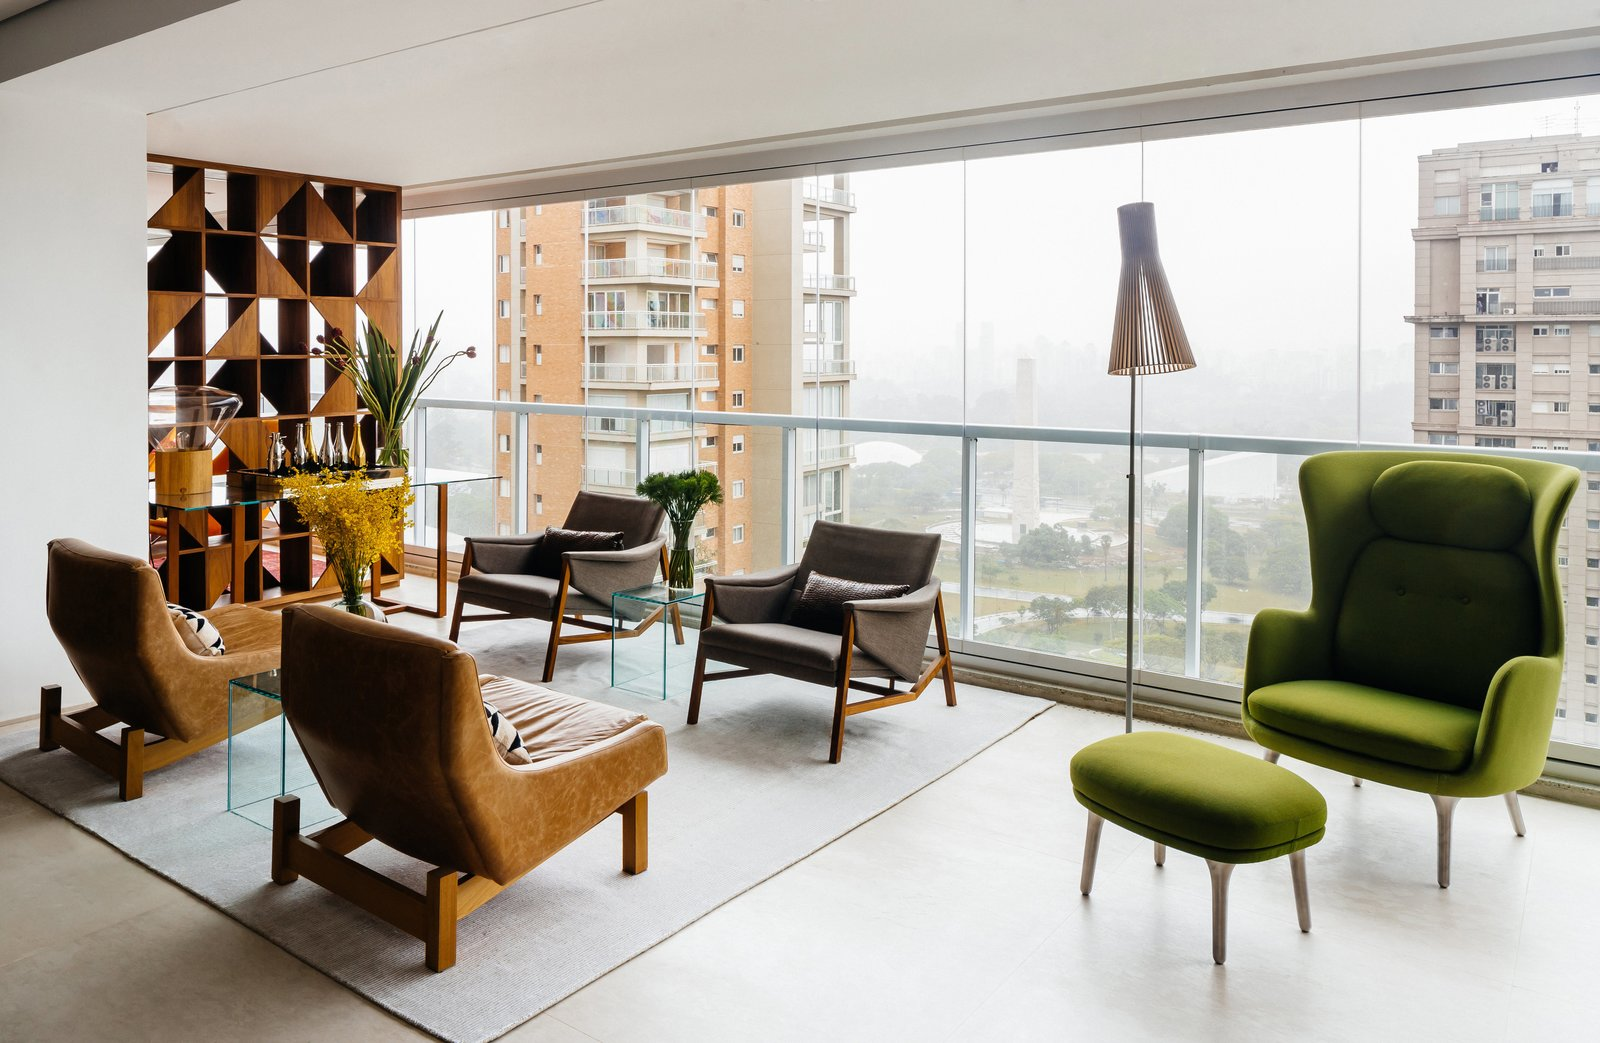 Living Room, Chair, Recliner, Console Tables, Coffee Tables, End Tables, Table Lighting, Lamps, and Rug Floor In an apartment overlooking São Paulo's Ibirapuera Park—completed in 1954 to commemorate the city's 400th anniversary—the furniture is as distinctive as the view. Architect Flavio Castro of FCstudio worked closely with the residents to update and outfit the home, which is appointed with a mix of contemporary and Brazilian modern classics. A pair of Sérgio Rodrigues's Paraty armchairs (in foreground)—designed for Brasilia's Itamaraty Palace in 1963—face a duo of Jader Almeida's Isa armchairs in the living area. The green Ro lounge and ottoman are by Jaime Hayon for Fritz Hansen.  Photo 1 of 9 in Overlooking a Niemeyer Masterpiece, This Flat is Filled with Brazilian Modern Gems